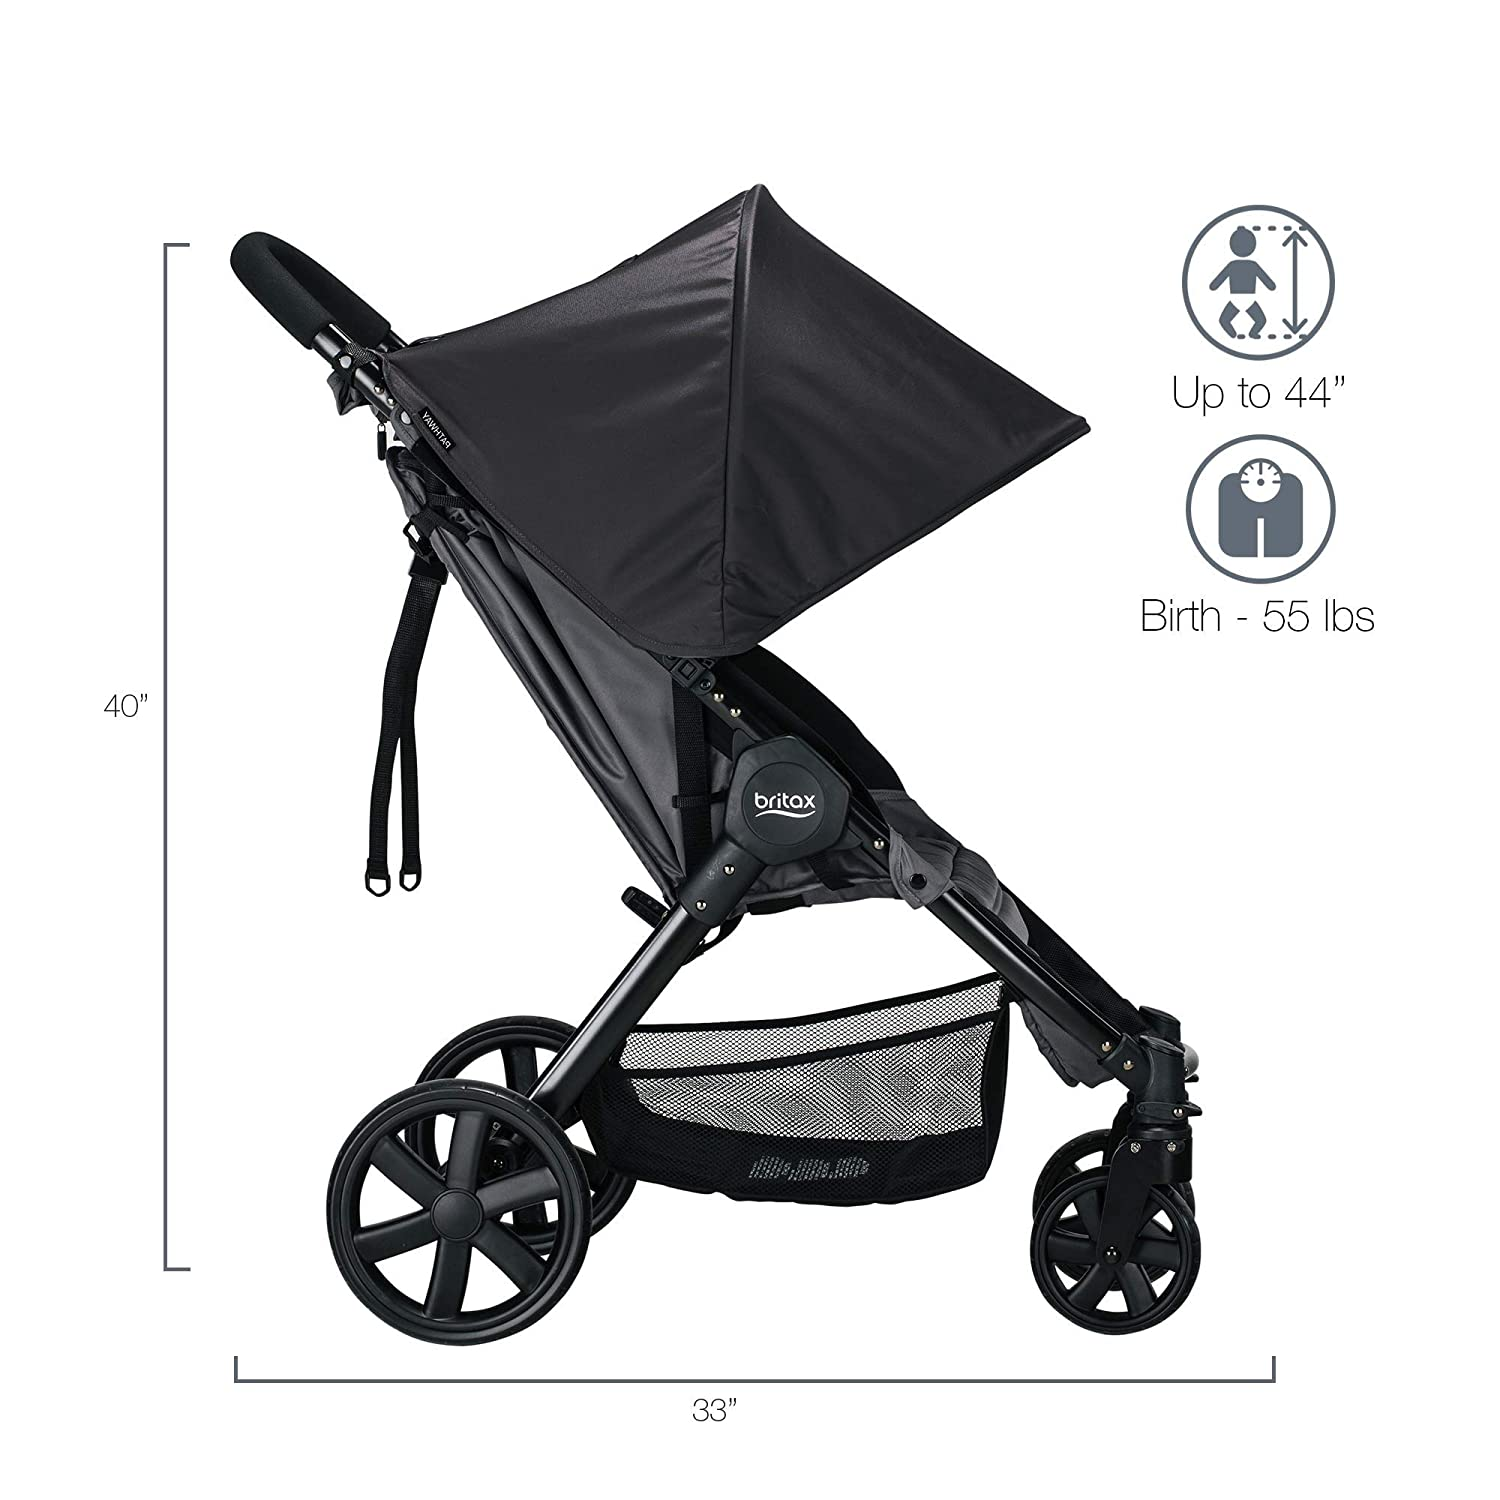 Image result for Britax Pathway Stroller